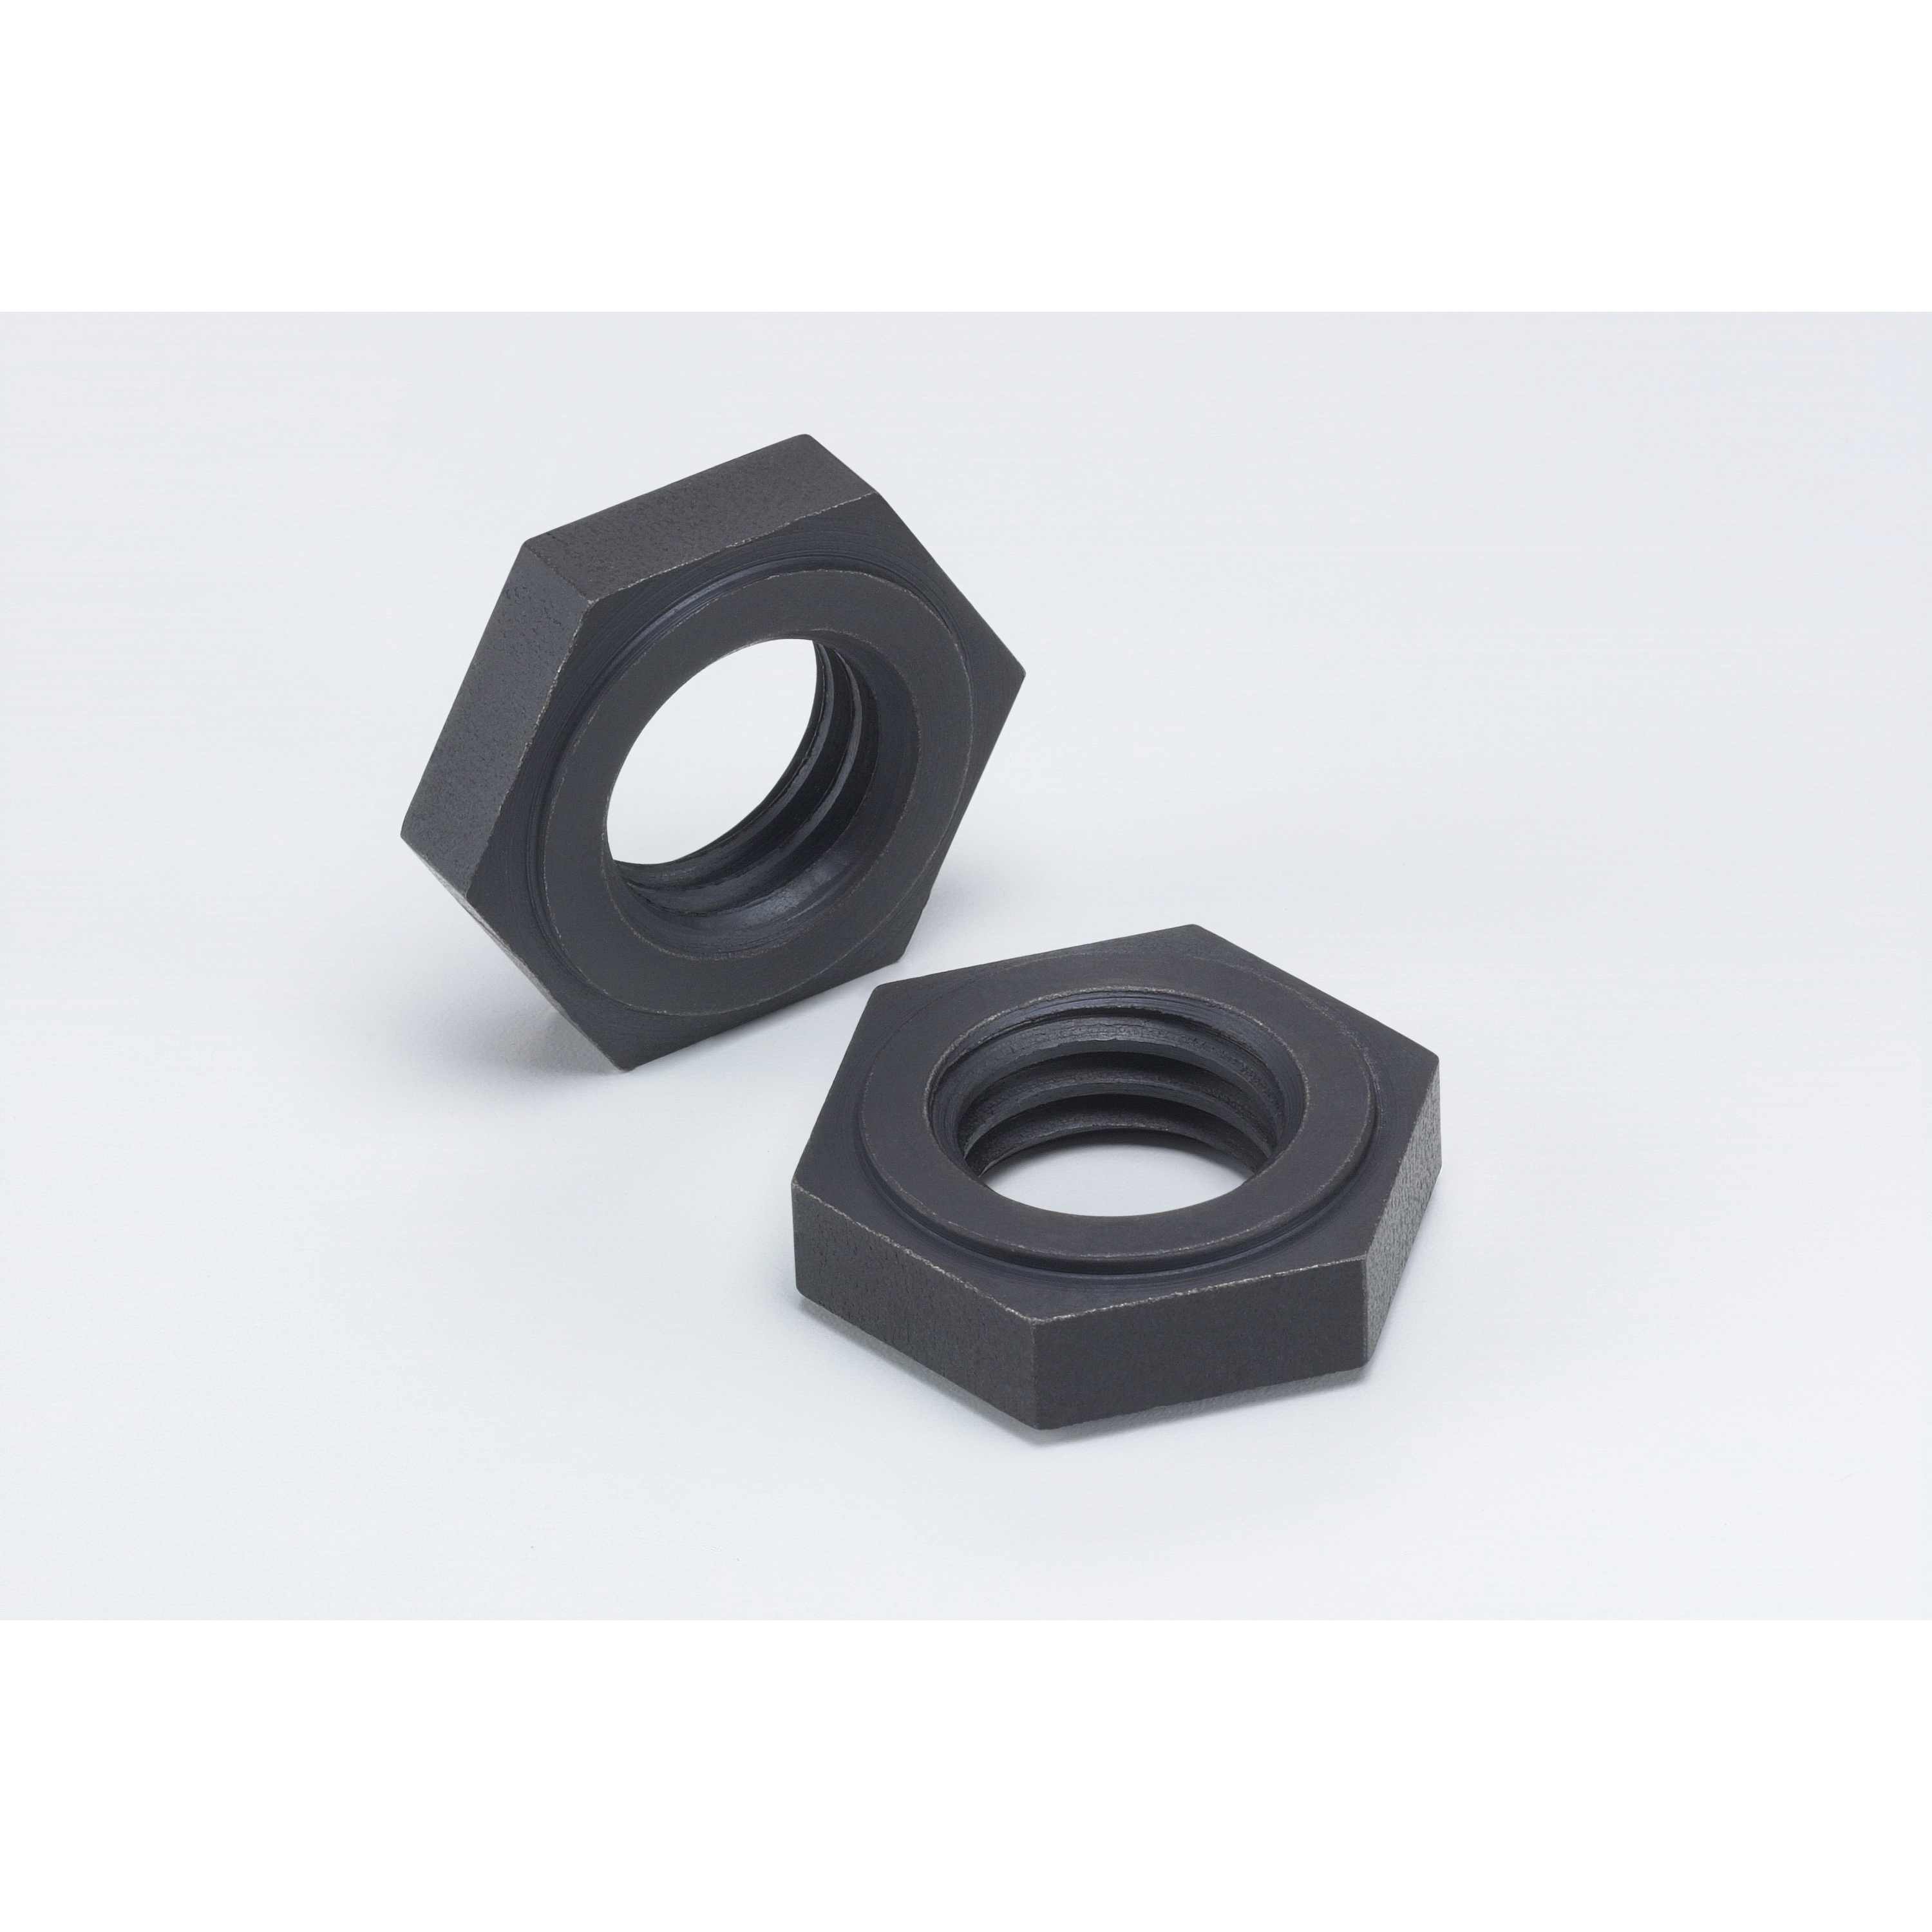 3M™ 051144-88765 Flange Threaded Flap Disc Adapter Nut, For Use With Abrasive Flap Discs